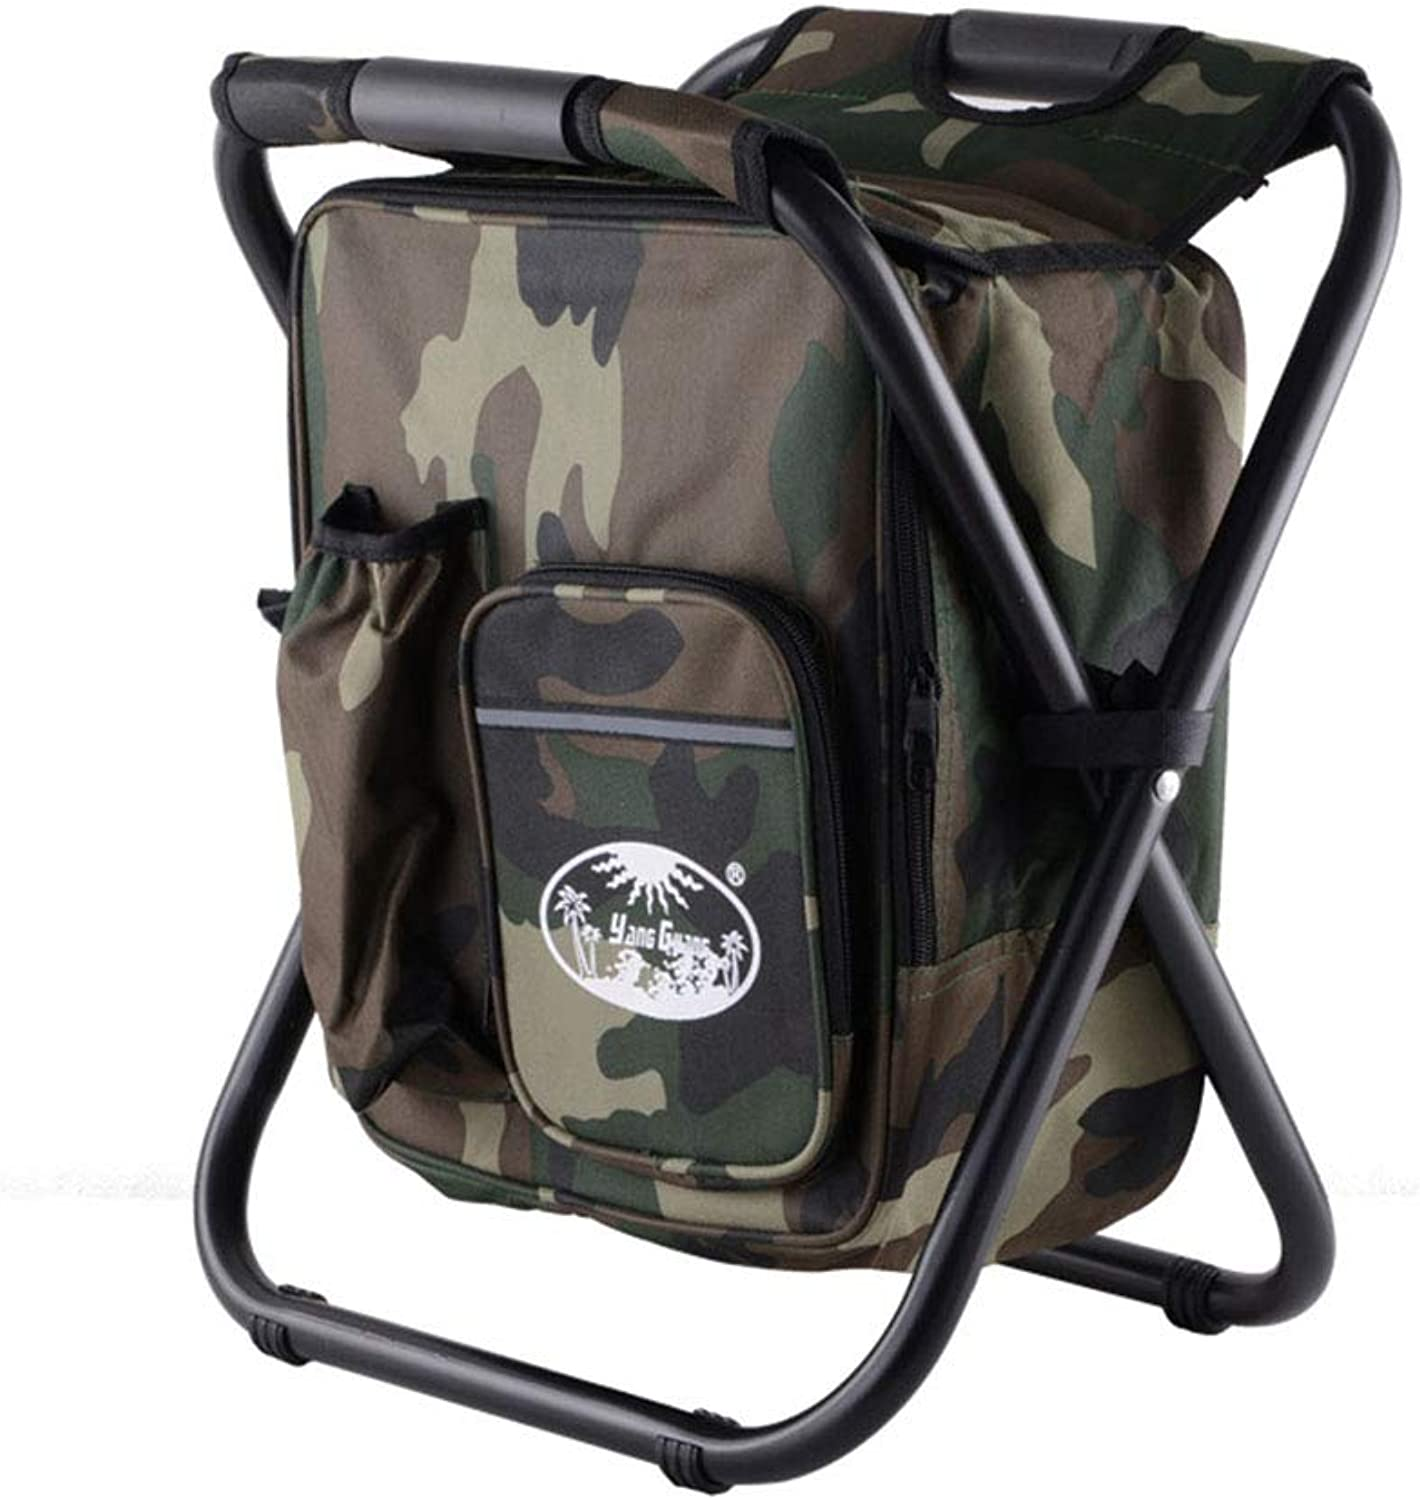 Double Shoulder Strap Portable Folding Chair  Multifunctional Insulation Package Folding Stool  Step Slacker Stool Camping Folding Chairs Outdoor,Camouflage